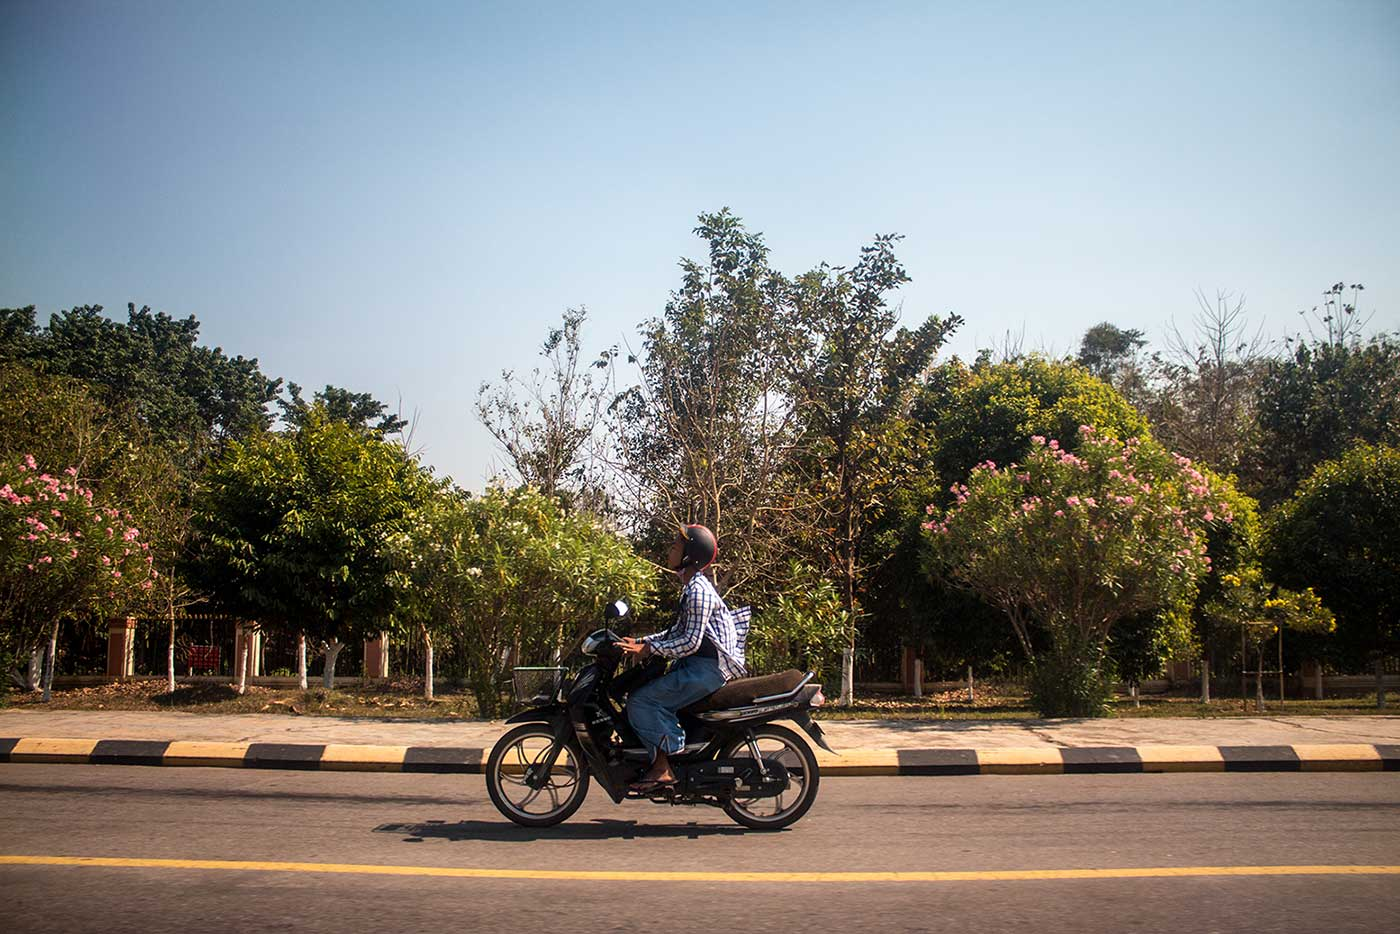 A commuter travels down a Naypyidaw highway.